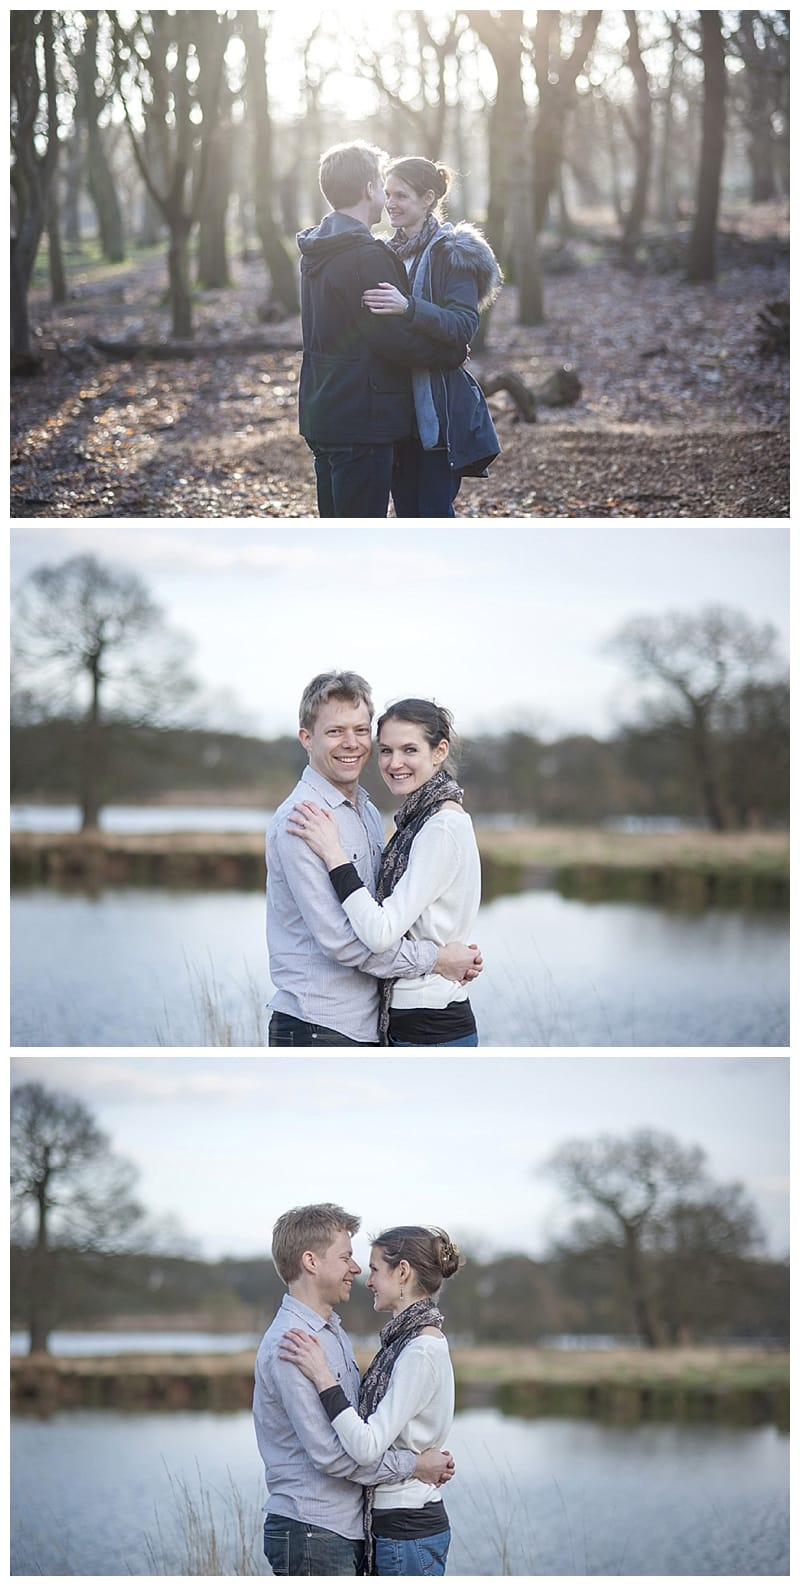 Alex & Laura, Richmond Park Engagement Photoshoot - Benjamin Wetherall Photography London ©0006